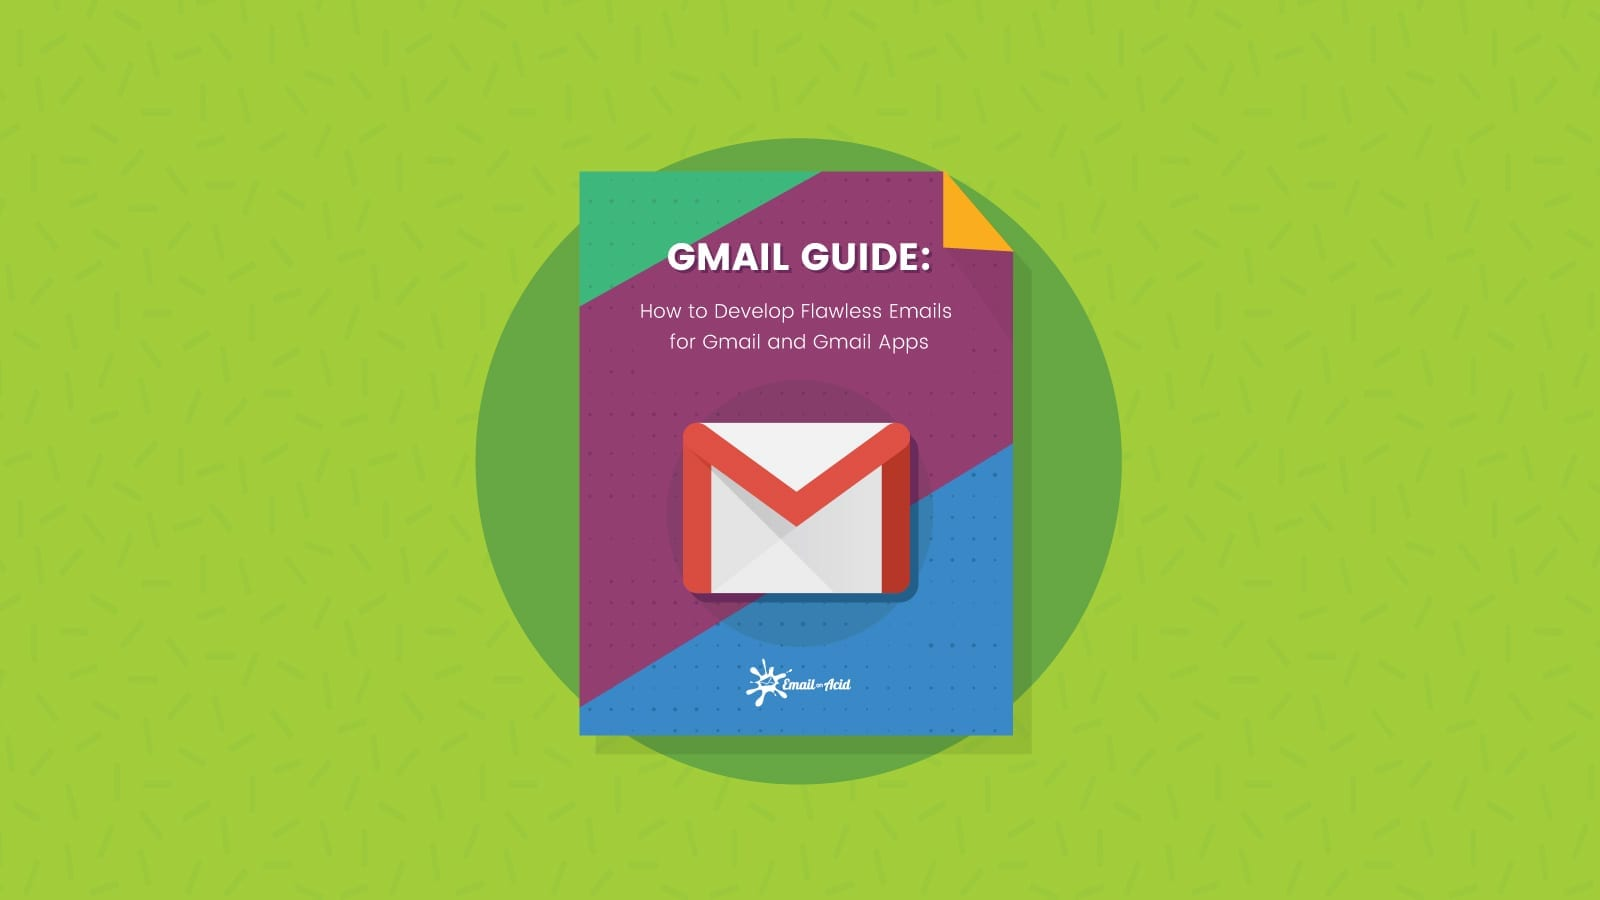 Gmail Guide for Email